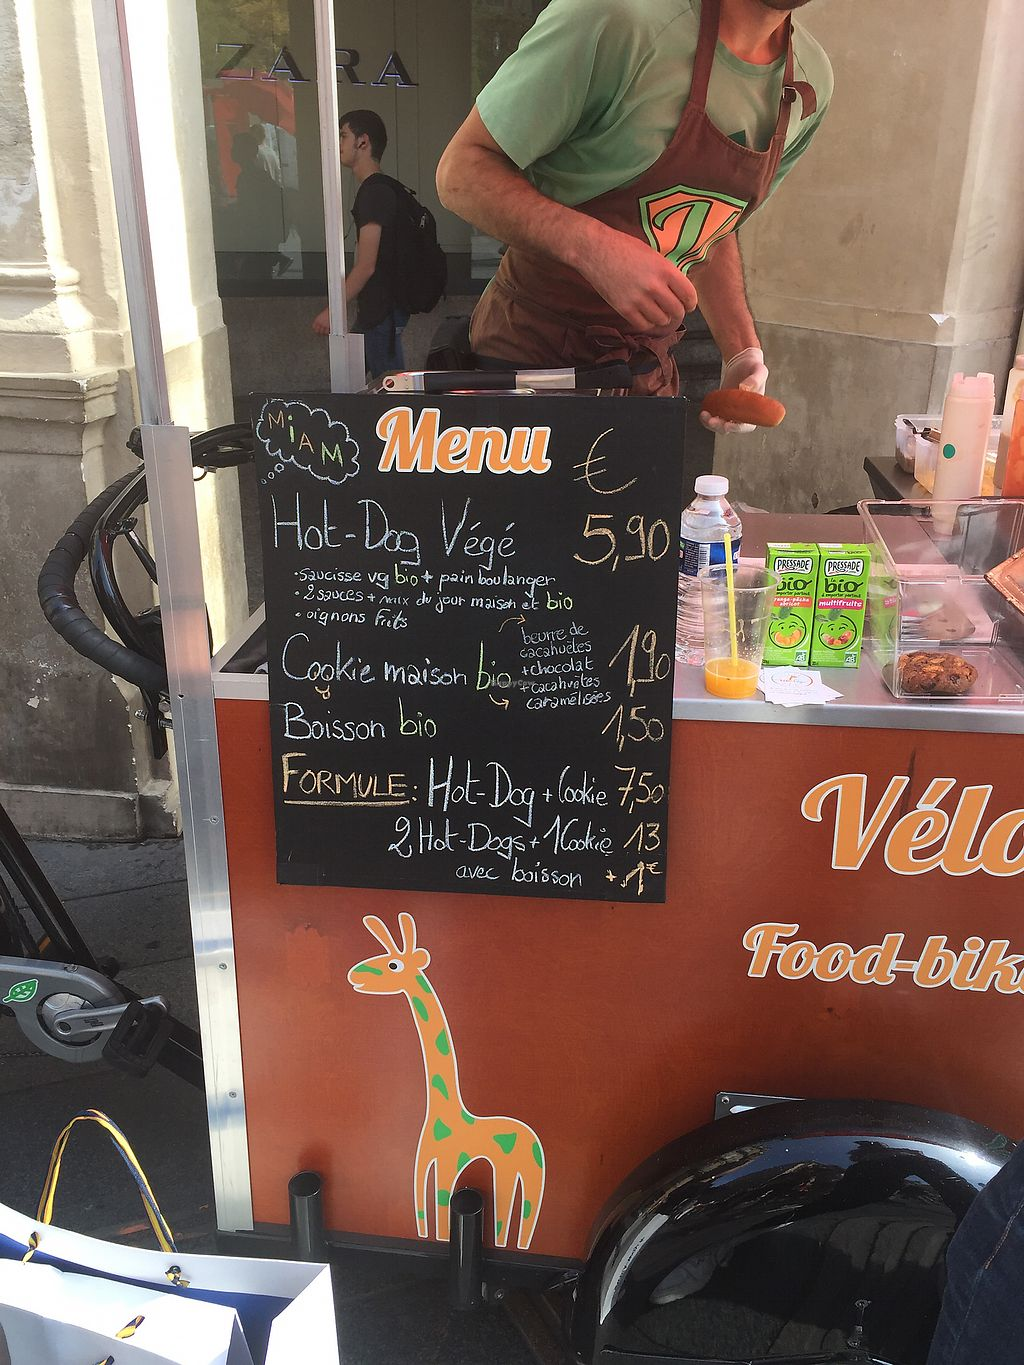 """Photo of Velo Vege Food Bike  by <a href=""""/members/profile/Marie-Lucile"""">Marie-Lucile</a> <br/>Menu <br/> September 23, 2017  - <a href='/contact/abuse/image/67997/307470'>Report</a>"""